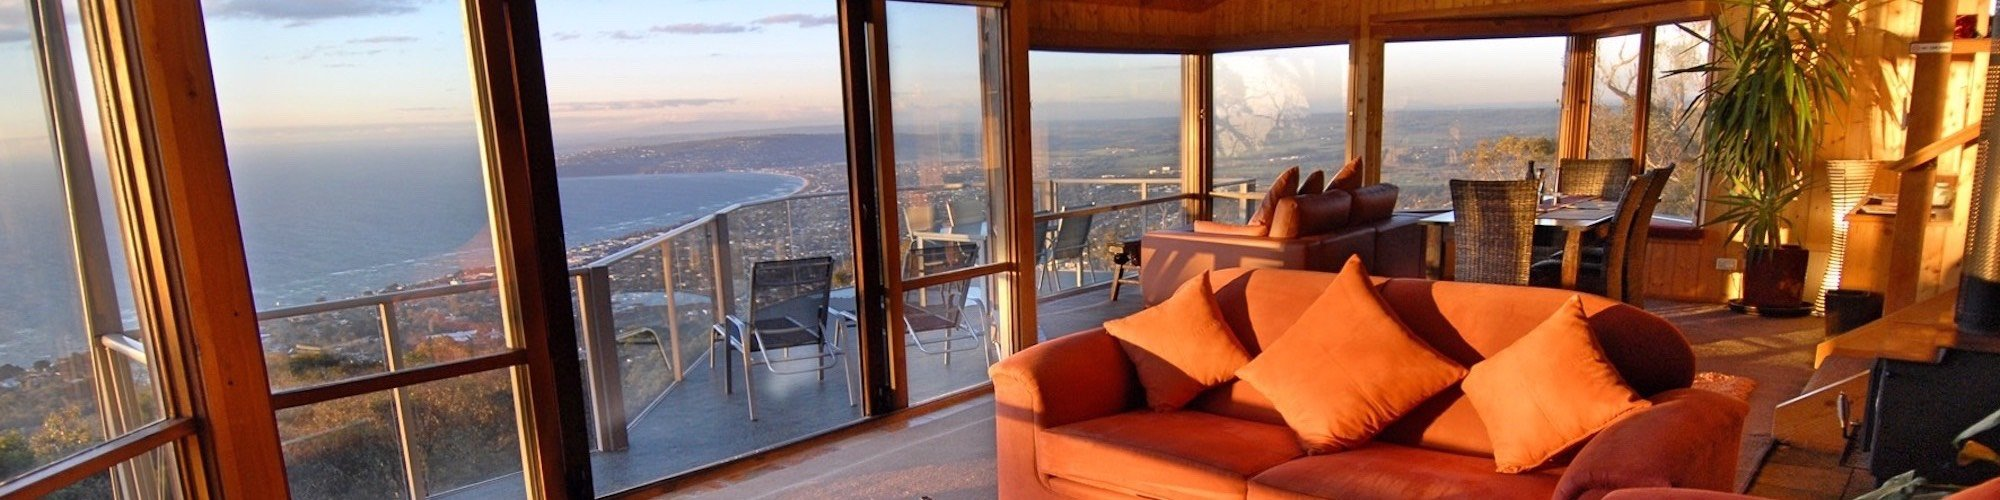 Those dream views with uniterupted northern aspects - Summit Views Skyview Penthouse